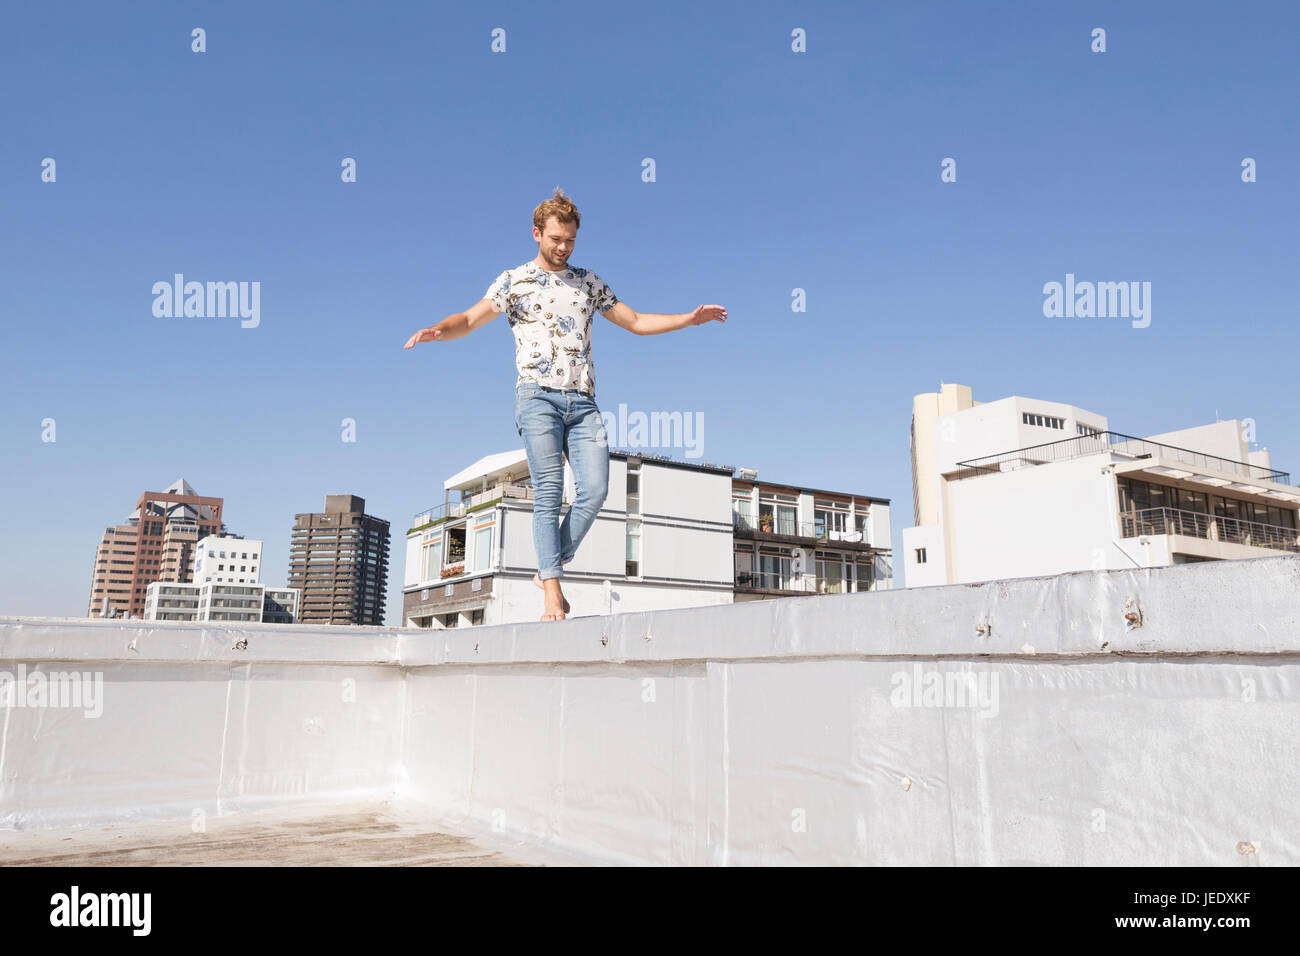 Barefooted man balancing on balustrade of a rooftop terrace - Stock Image